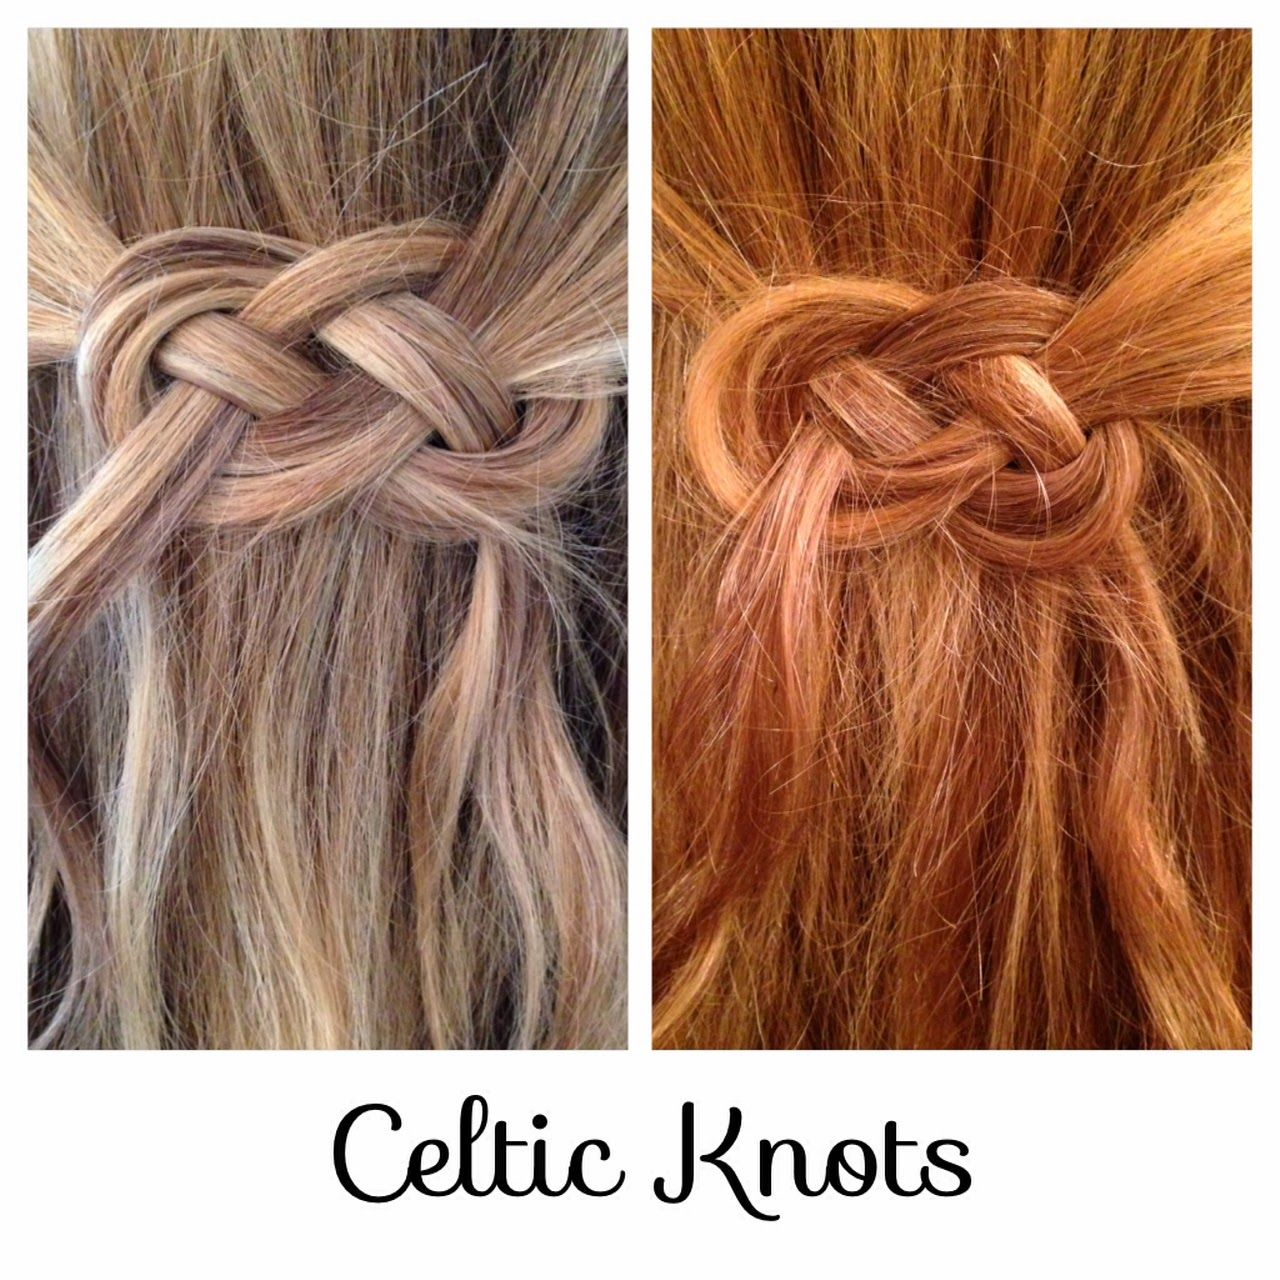 celtic knot great for st. patrick's day or for bridesmaids